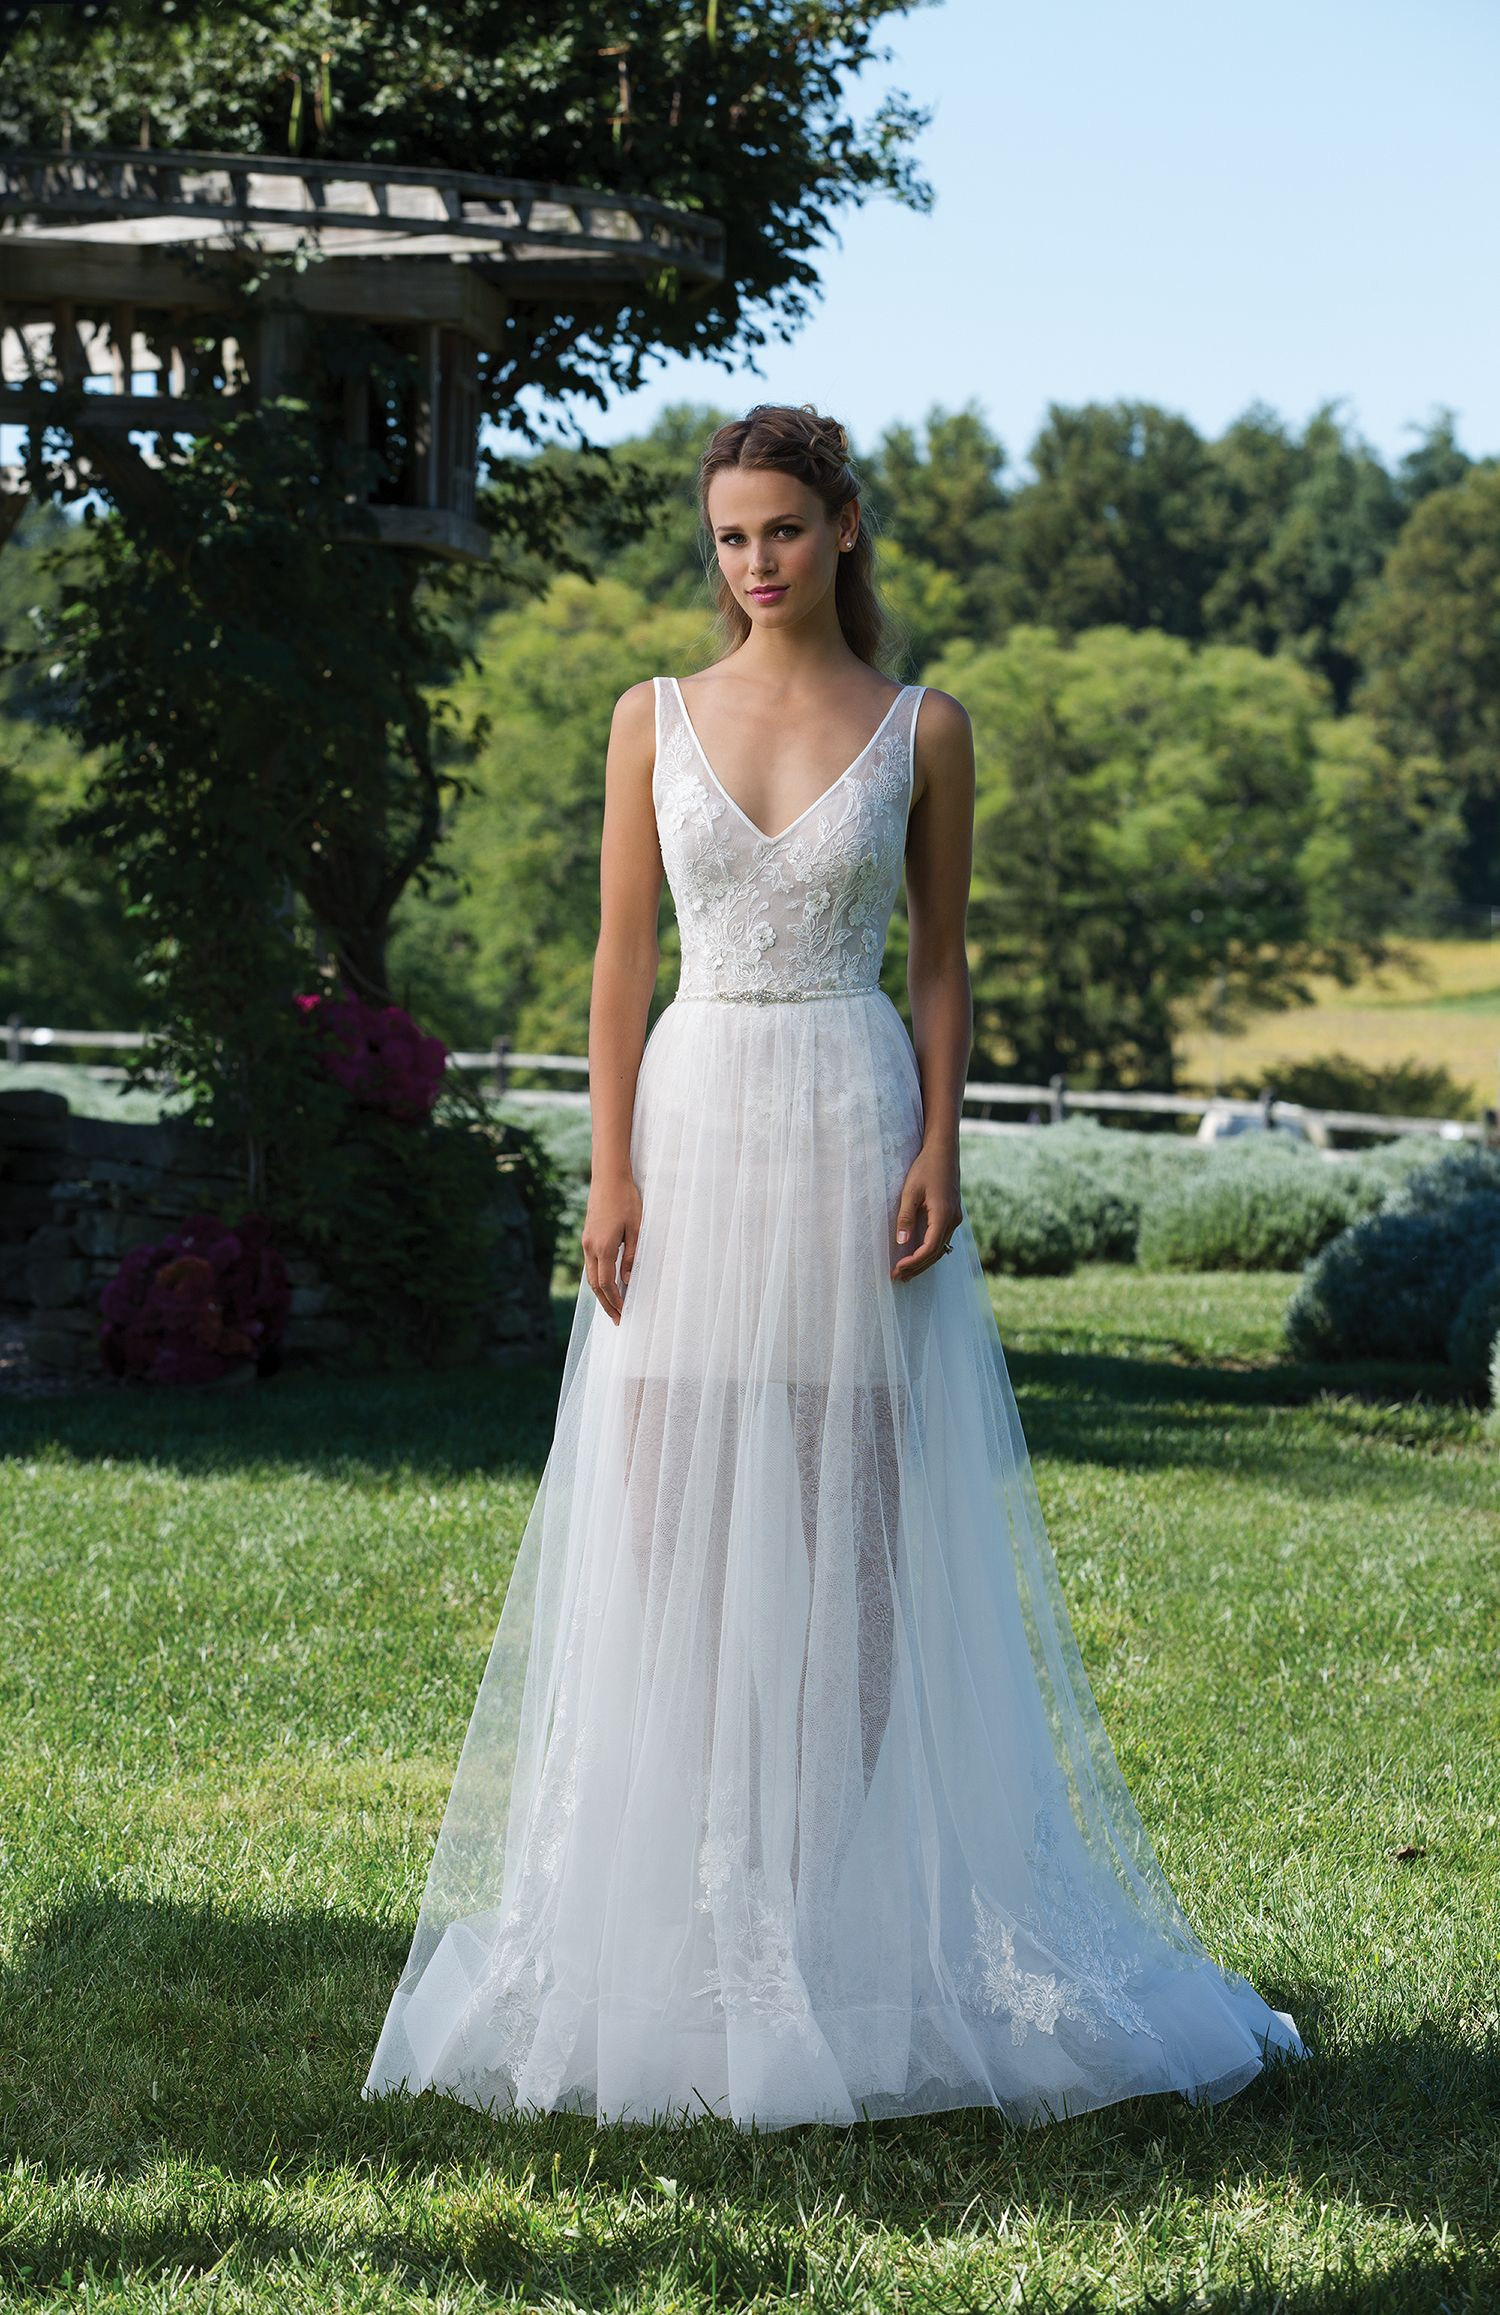 new product 1b089 919a0 2-in-1 Brautkleid von Sincerity aus der Kollektion 2018 ...